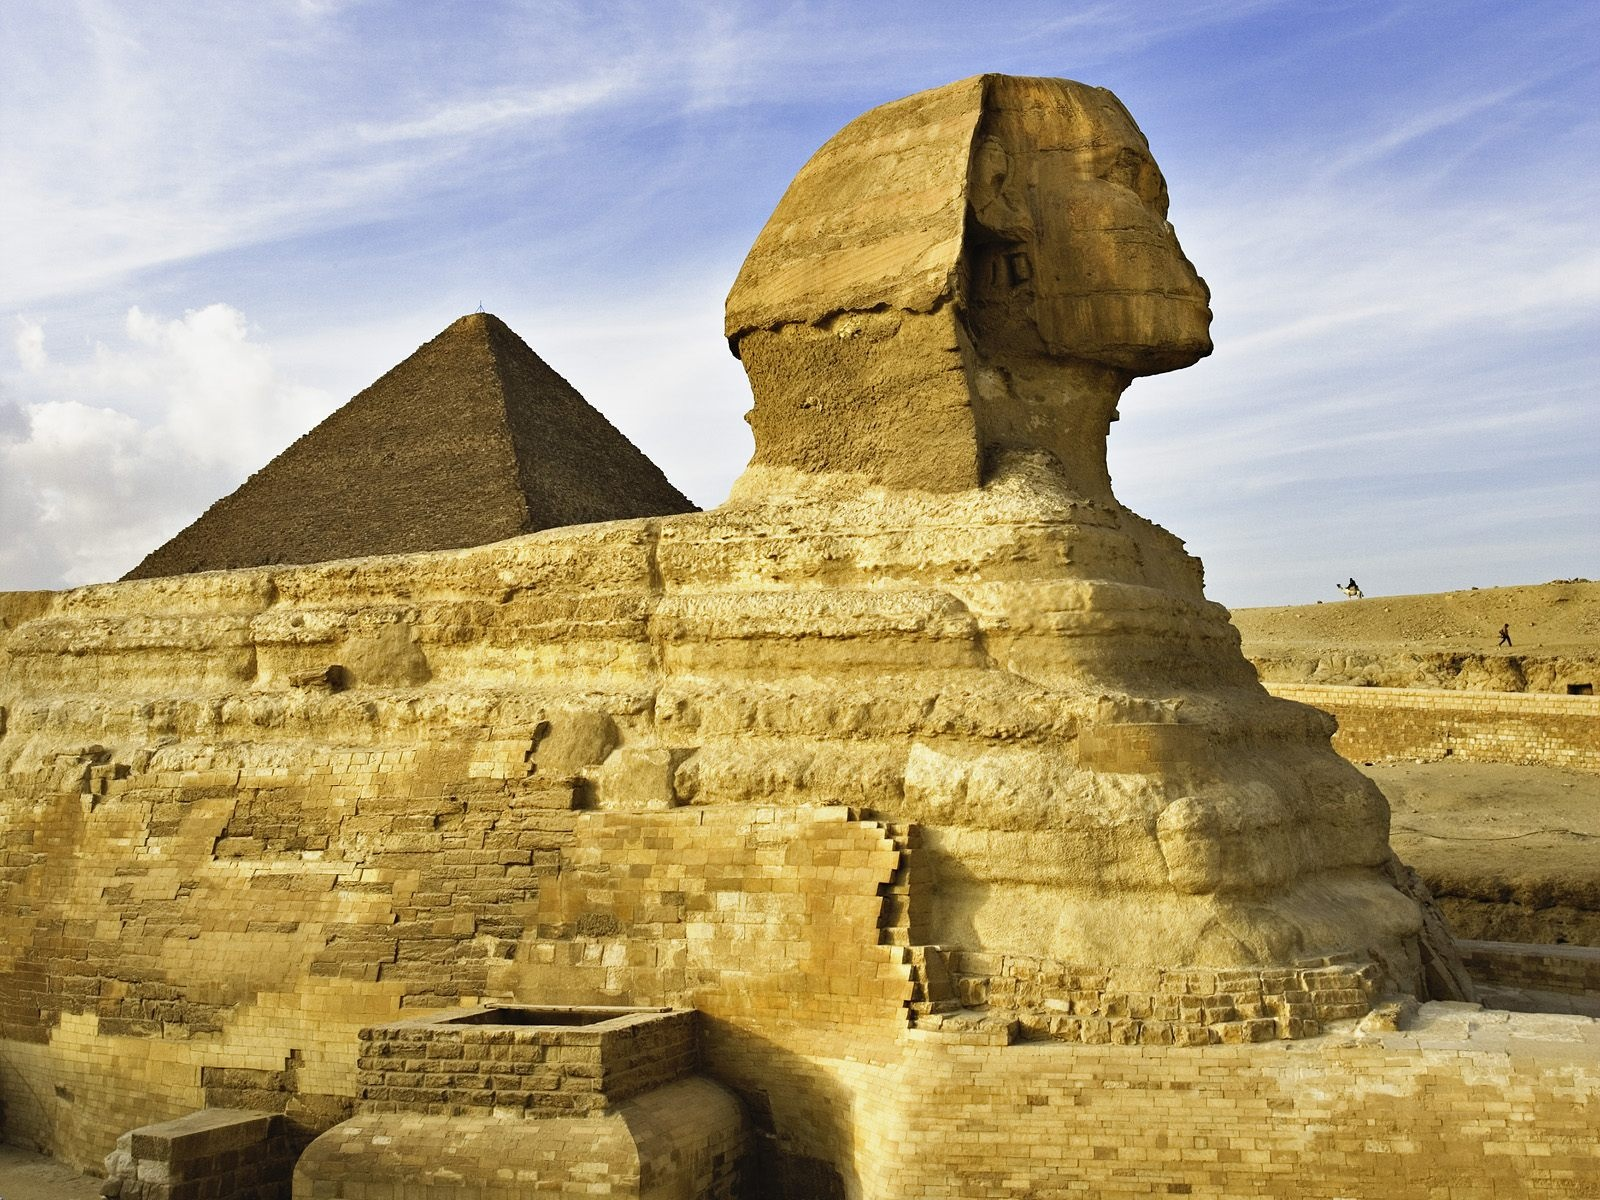 The most beautiful background of the Sphinx Egypt is one of the features of the world